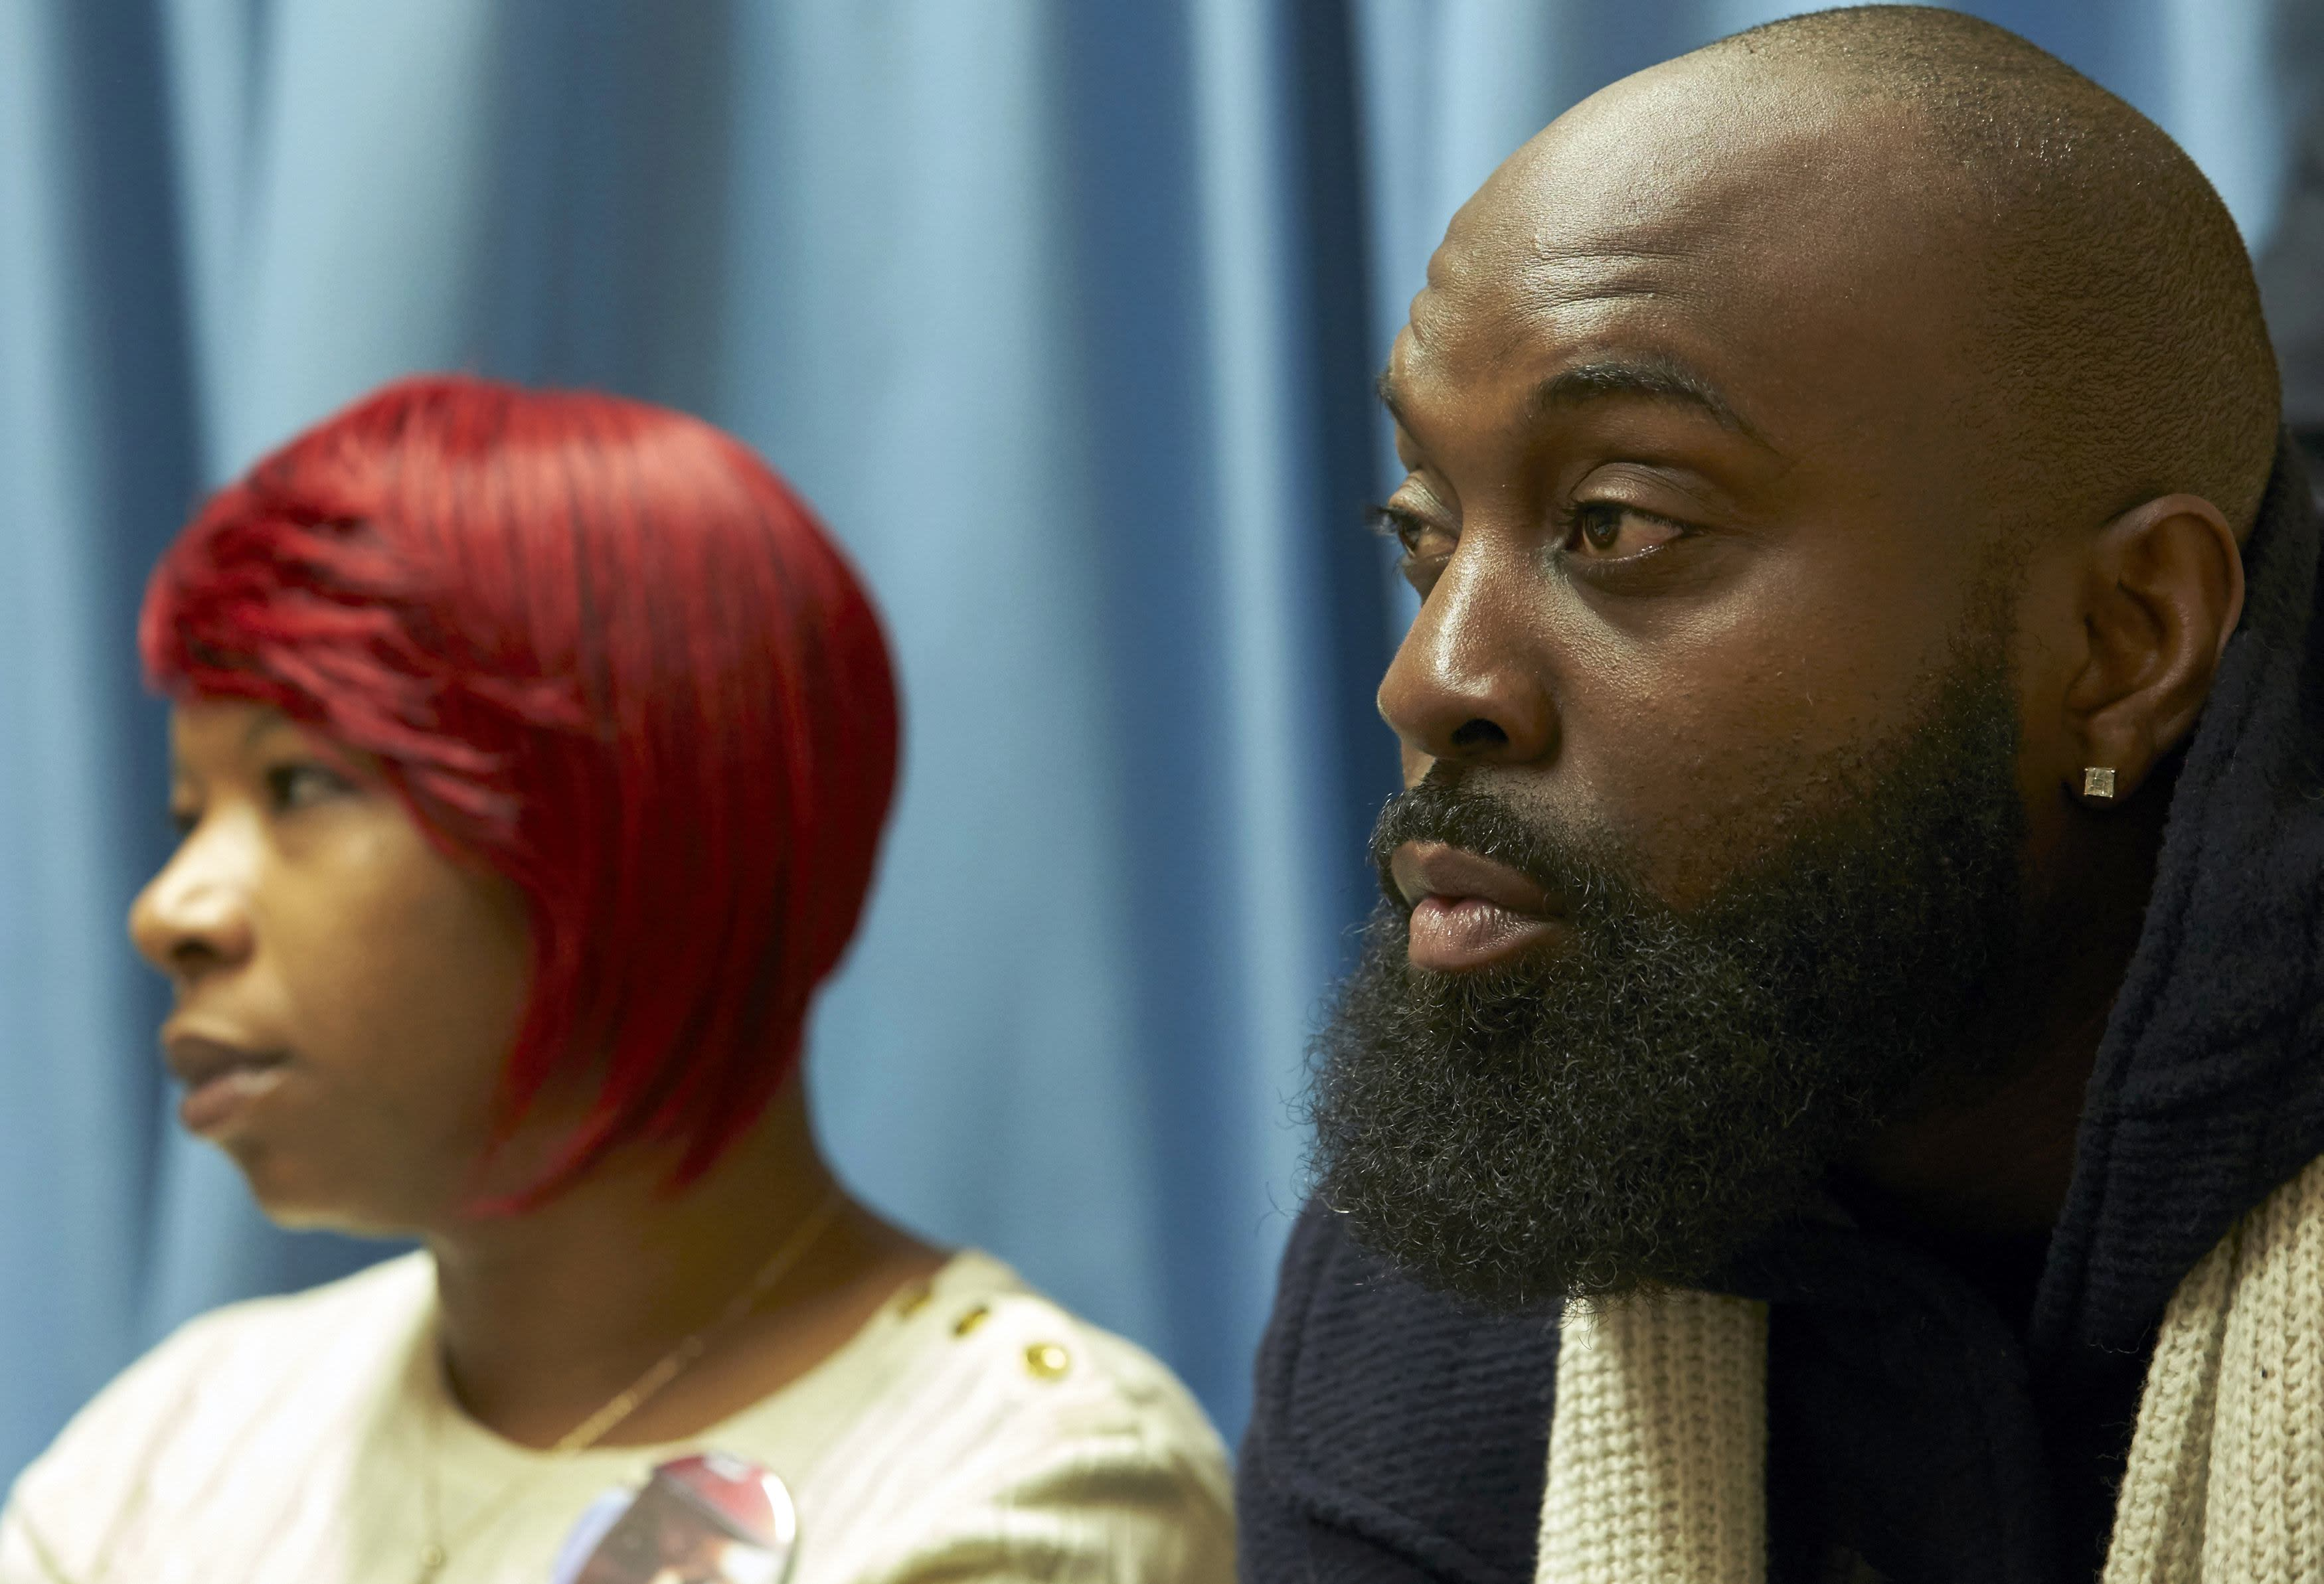 """The mother, Lesley McSpadden (L) and father, Michael Brown Sr., of slain teenager Michael Brown, hold a news conference in Geneva November 12, 2014. The family of the slain Missouri teenager Michael Brown said on Wednesday that they had faith in the pending decision of a grand jury and called for supporters to refrain from violence. Michael Brown Sr. said that he and his wife has come to the United Nations, where they testified to the U.N. Committee against Torture, to seek """"redress"""" for the fatal shooting of their unarmed 18-year-old son in August. REUTERS/Denis Balibouse (SWITZERLAND)"""